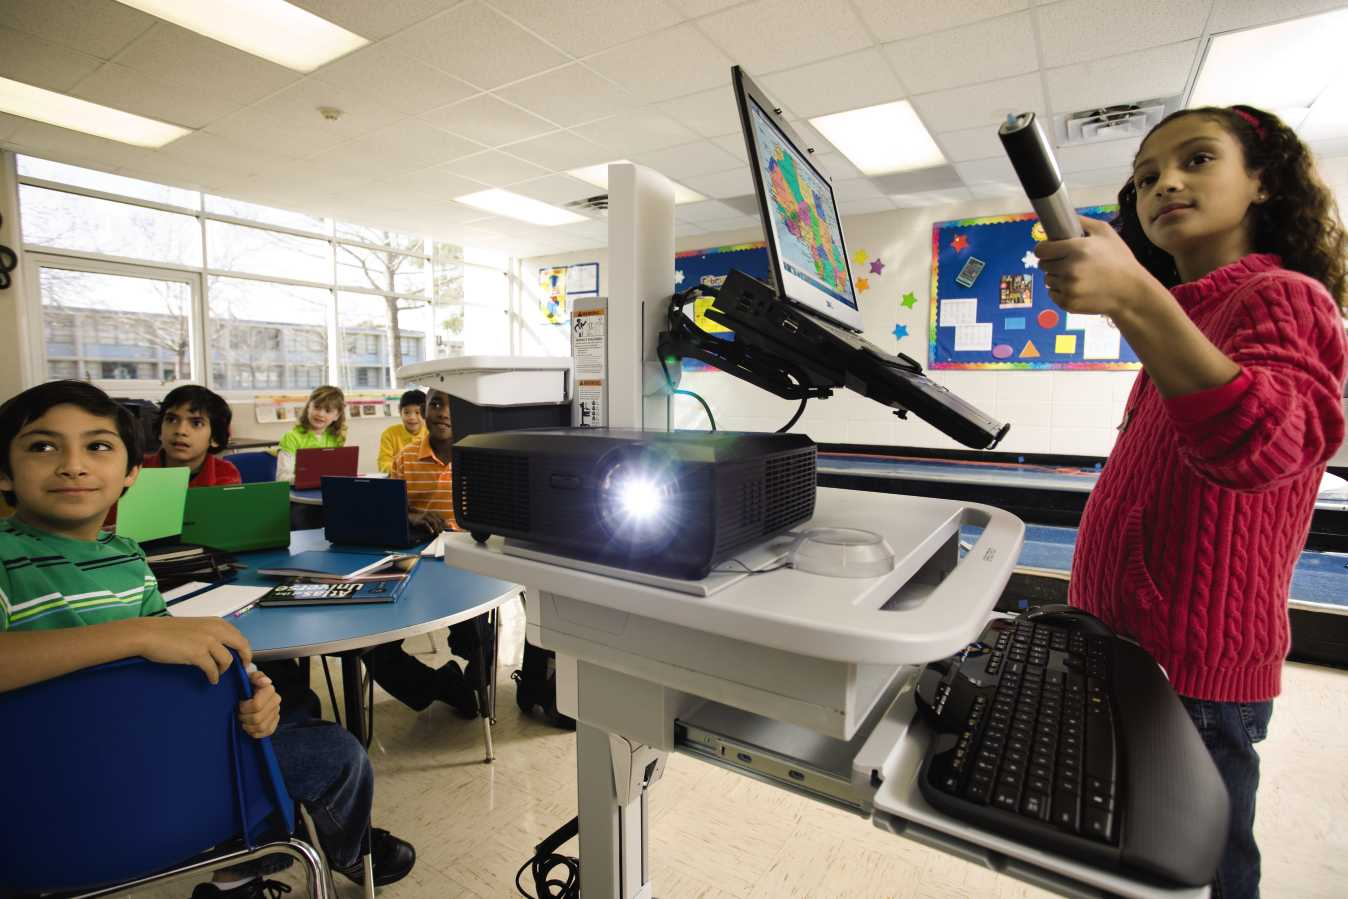 Keep A Healthy Classroom When Using A Projector